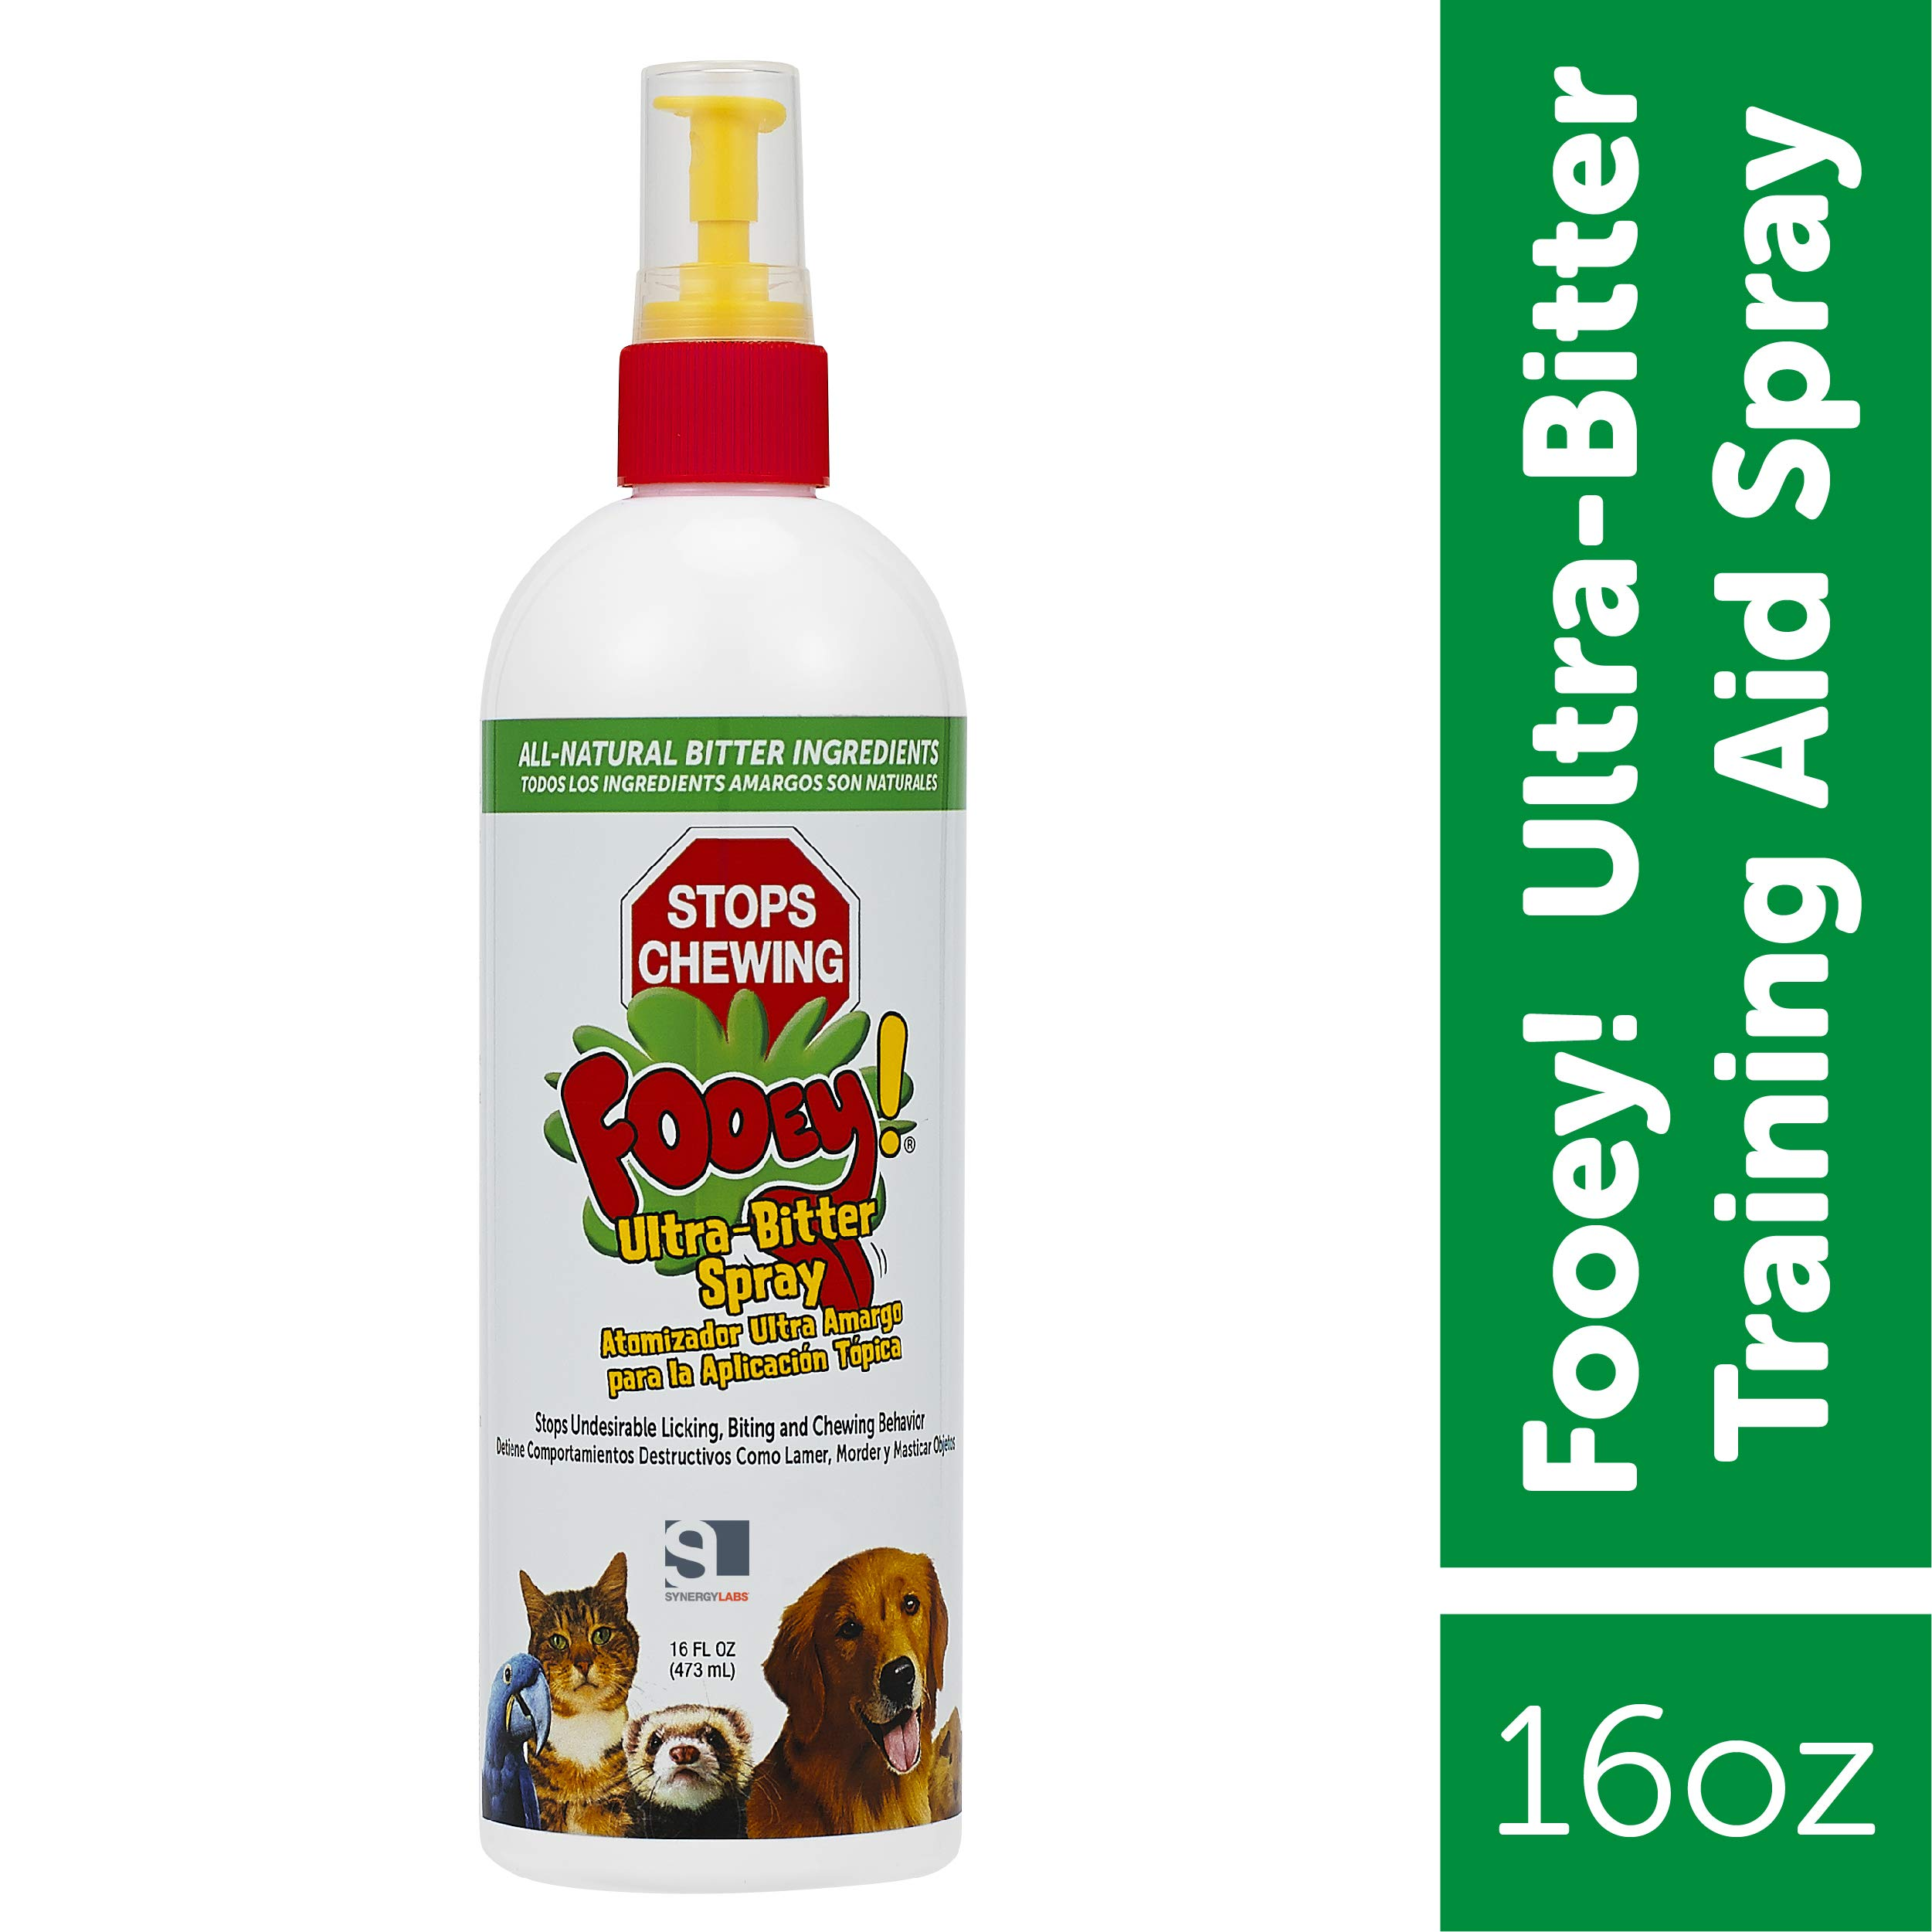 Ultra-Bitter Training Aid Spray - Chewing, Biting, Licking Deterrent for Dogs, Cats, Horses, Rabbits, Ferrets, Birds - Safe for Pet's Skin - Can Also Protect Garden from Deer and Pests (16 oz.) by Fooey